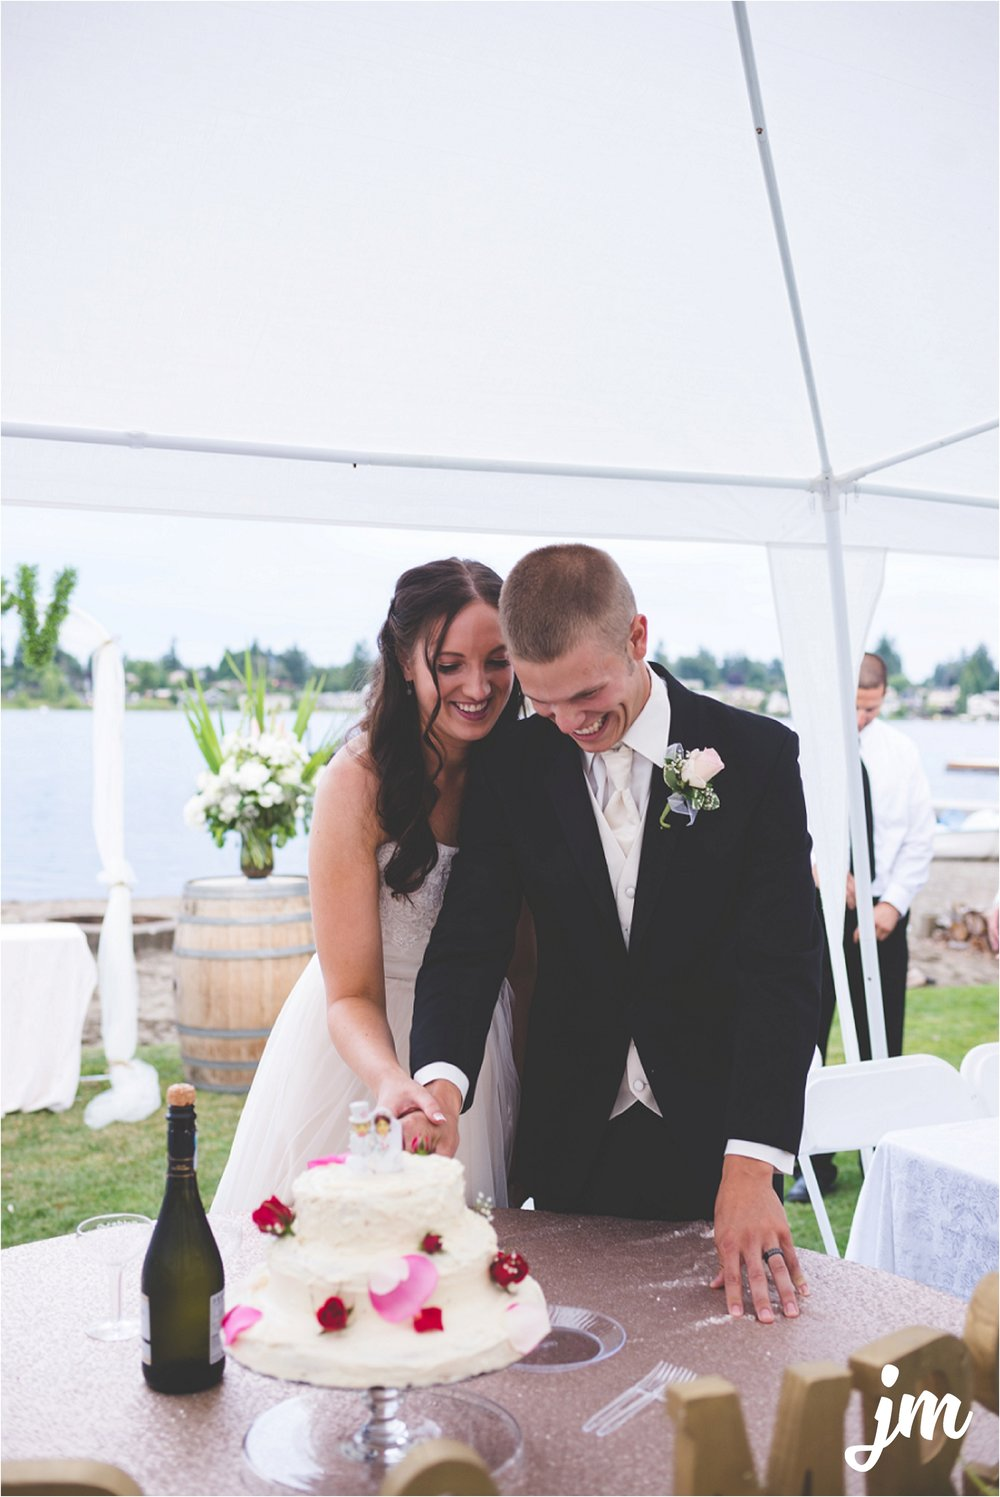 jannicka-mayte-intimate-backyard-lake-wedding-kent-wa-pacific-northwest-wedding-photographer_0057.jpg